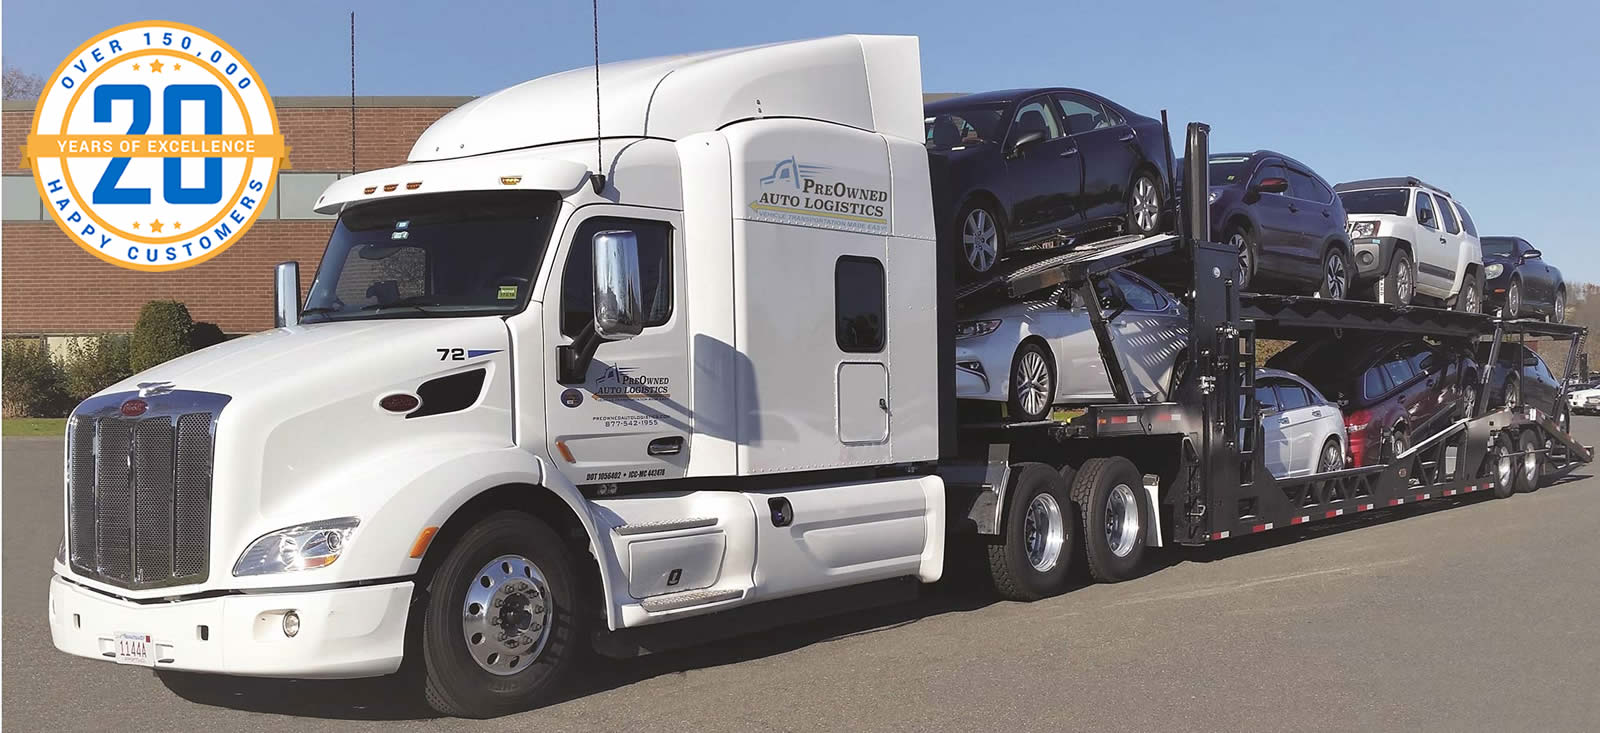 Preowned Auto Logistics Auto Transport Truck